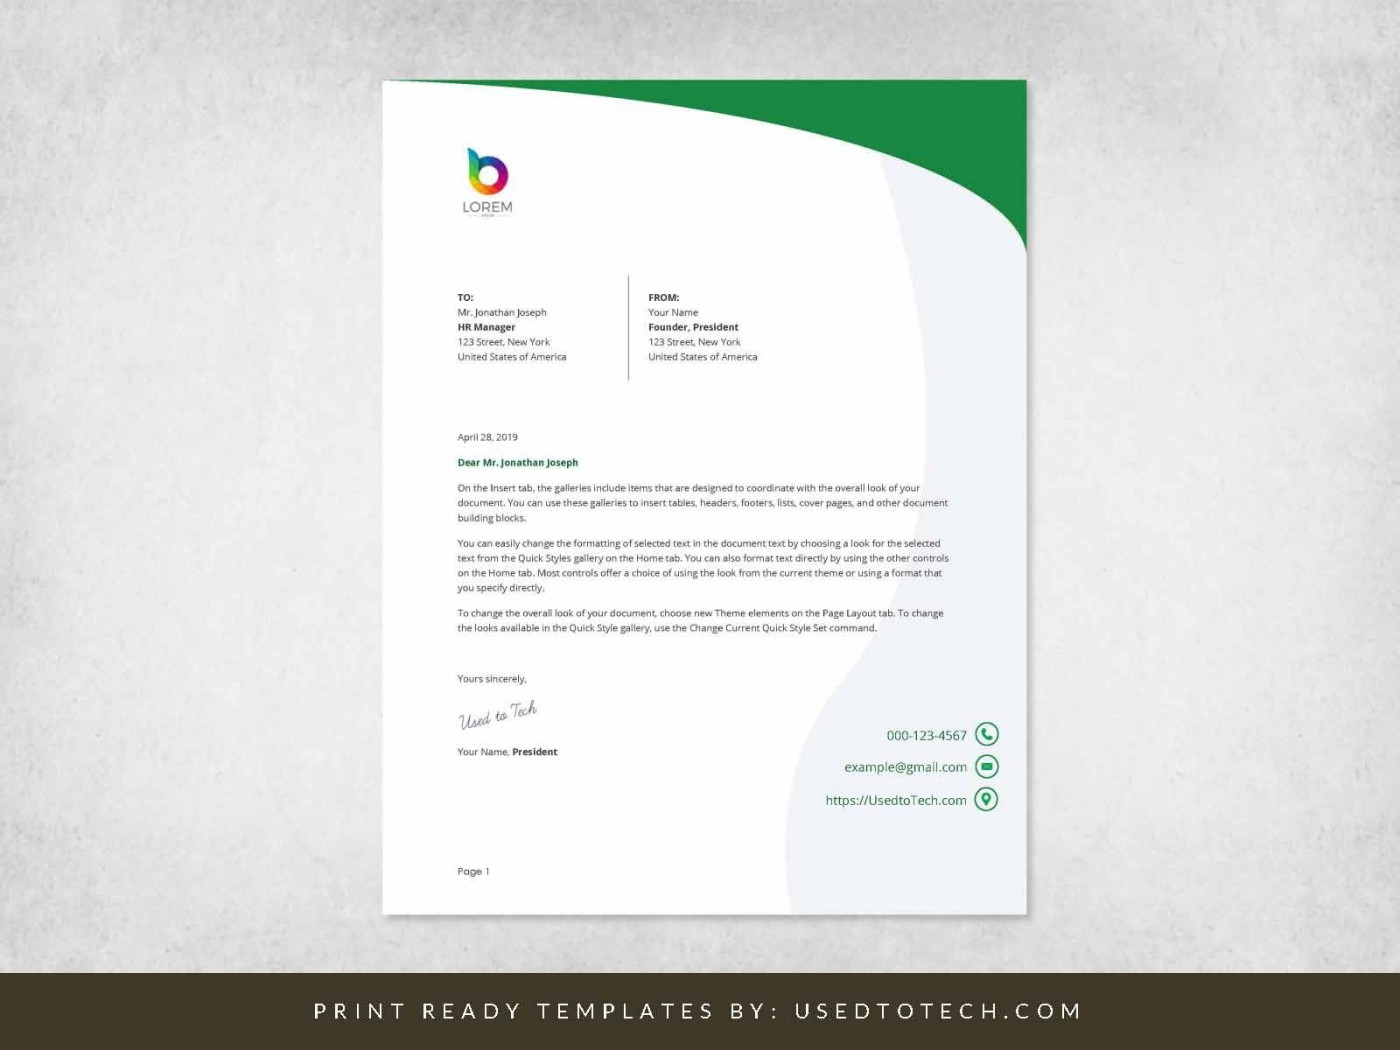 000 Simple Letterhead Template Free Download Word Highest Clarity  Microsoft Format In Personal Red1400